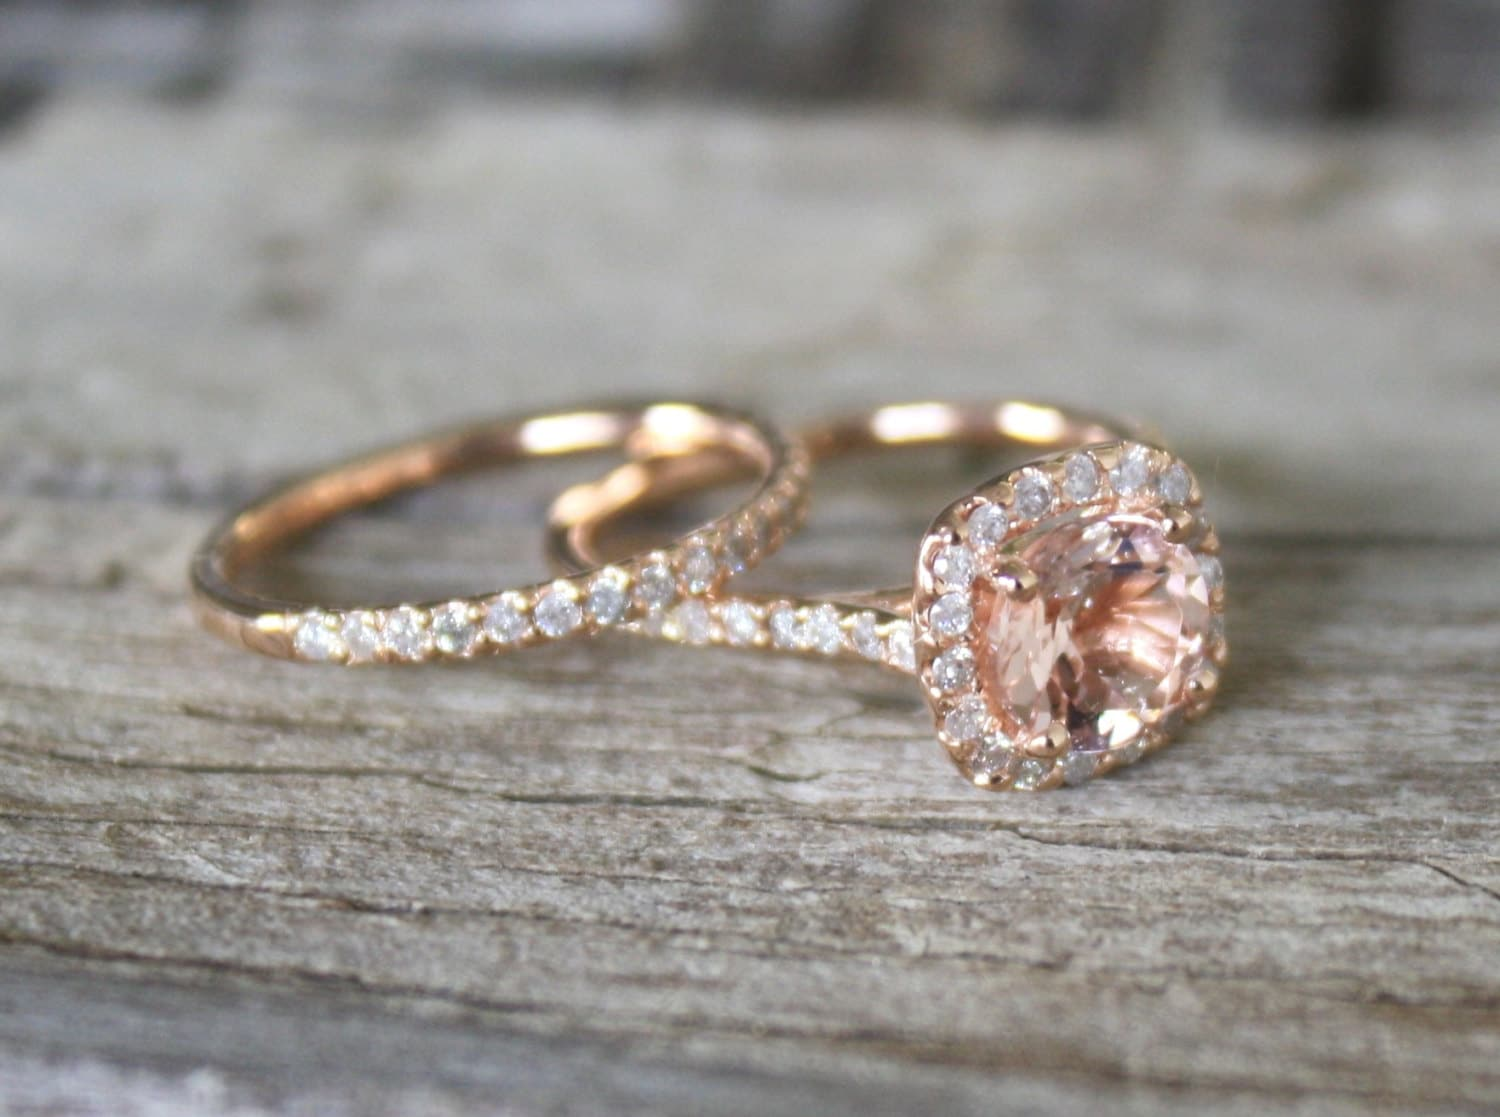 friendly ring and via diamond recycled gold etsy rose pin moissanite alternative engagement eco rings size